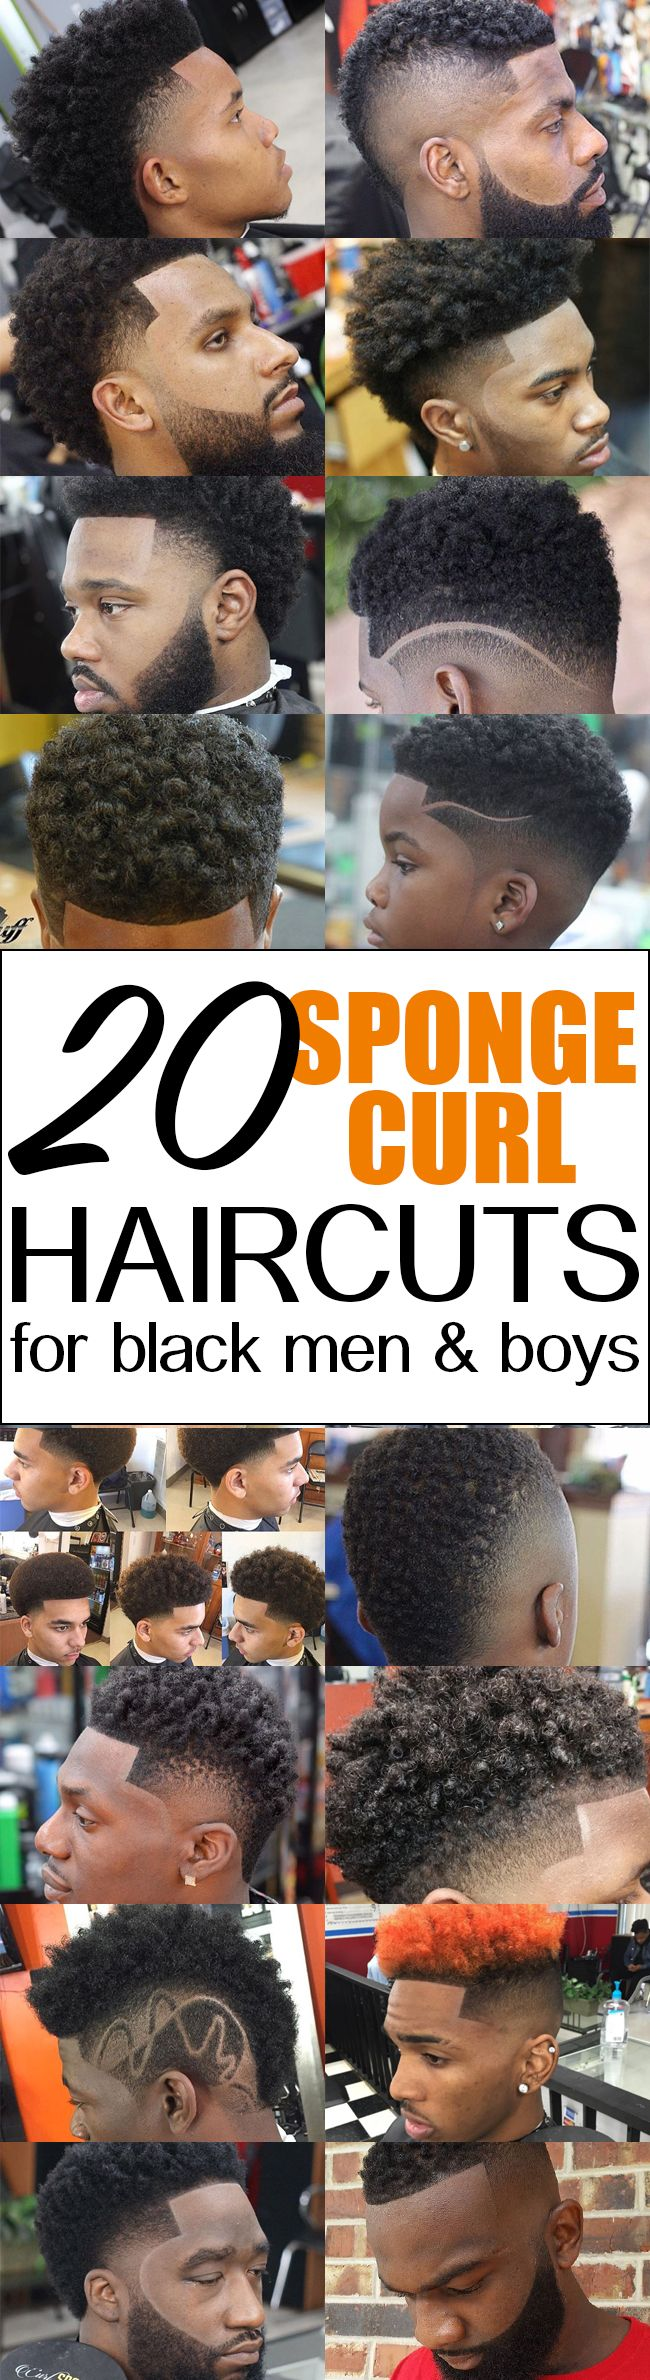 Curl sponge hair twist brush really works haircuts black man and